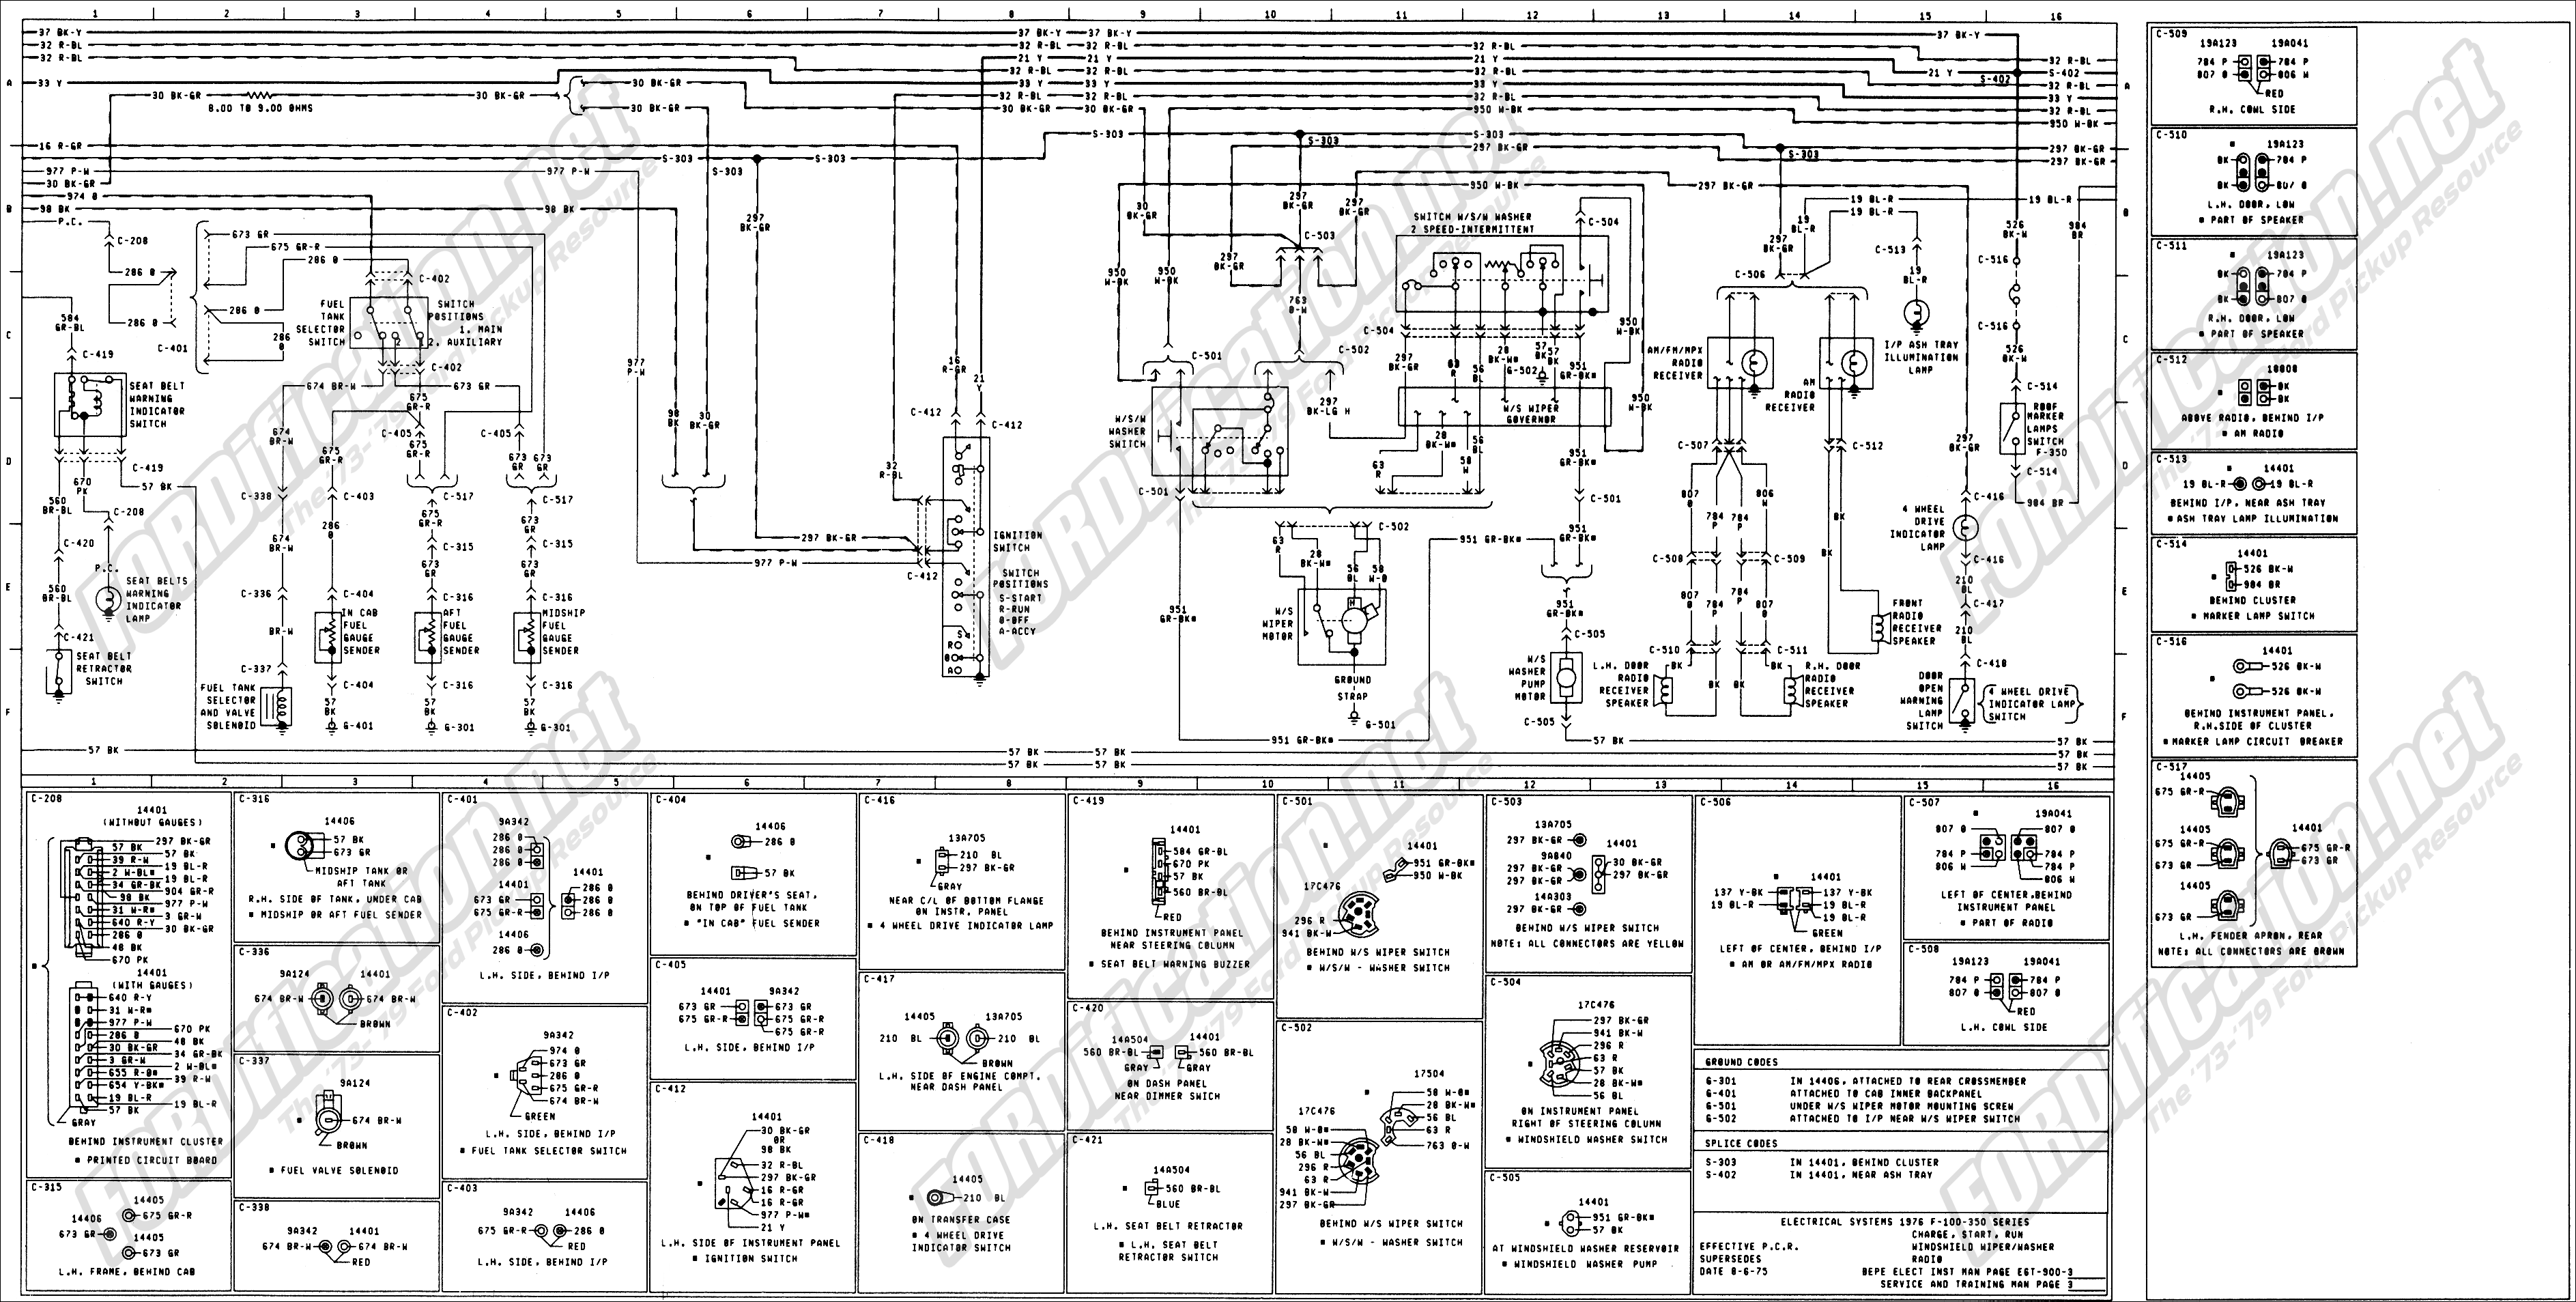 2012 Ford F350 Wiring Diagrams Wiring Diagram Schematics 2011 F350 Wiring  Diagram 2012 Ford F350 Wiring Diagrams